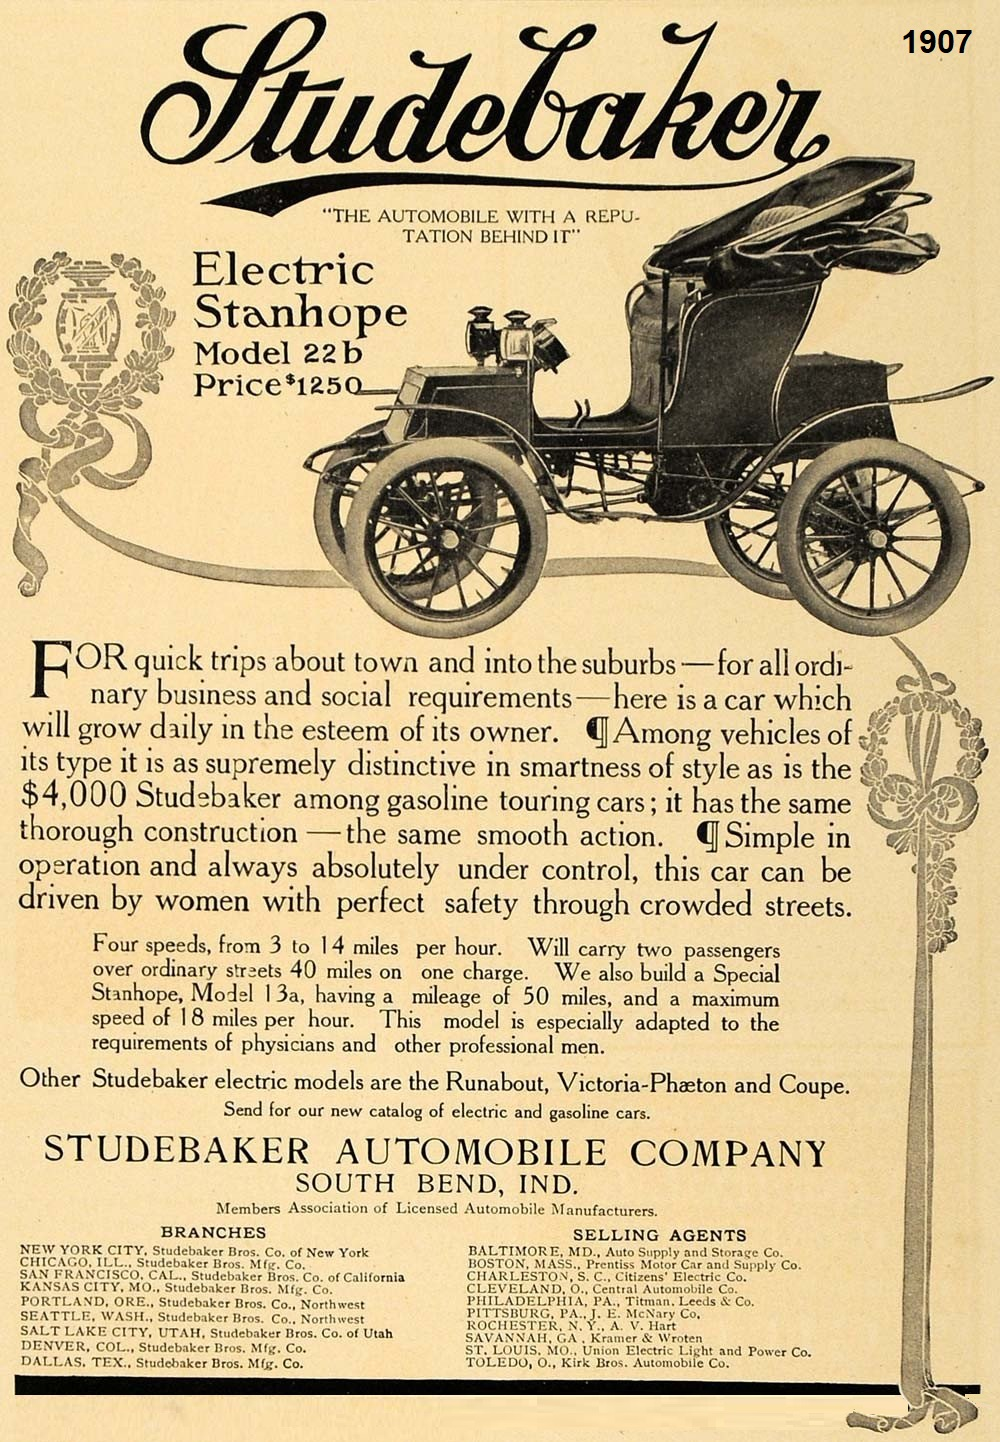 1907 Studebaker Electric Stanhope Model 22b